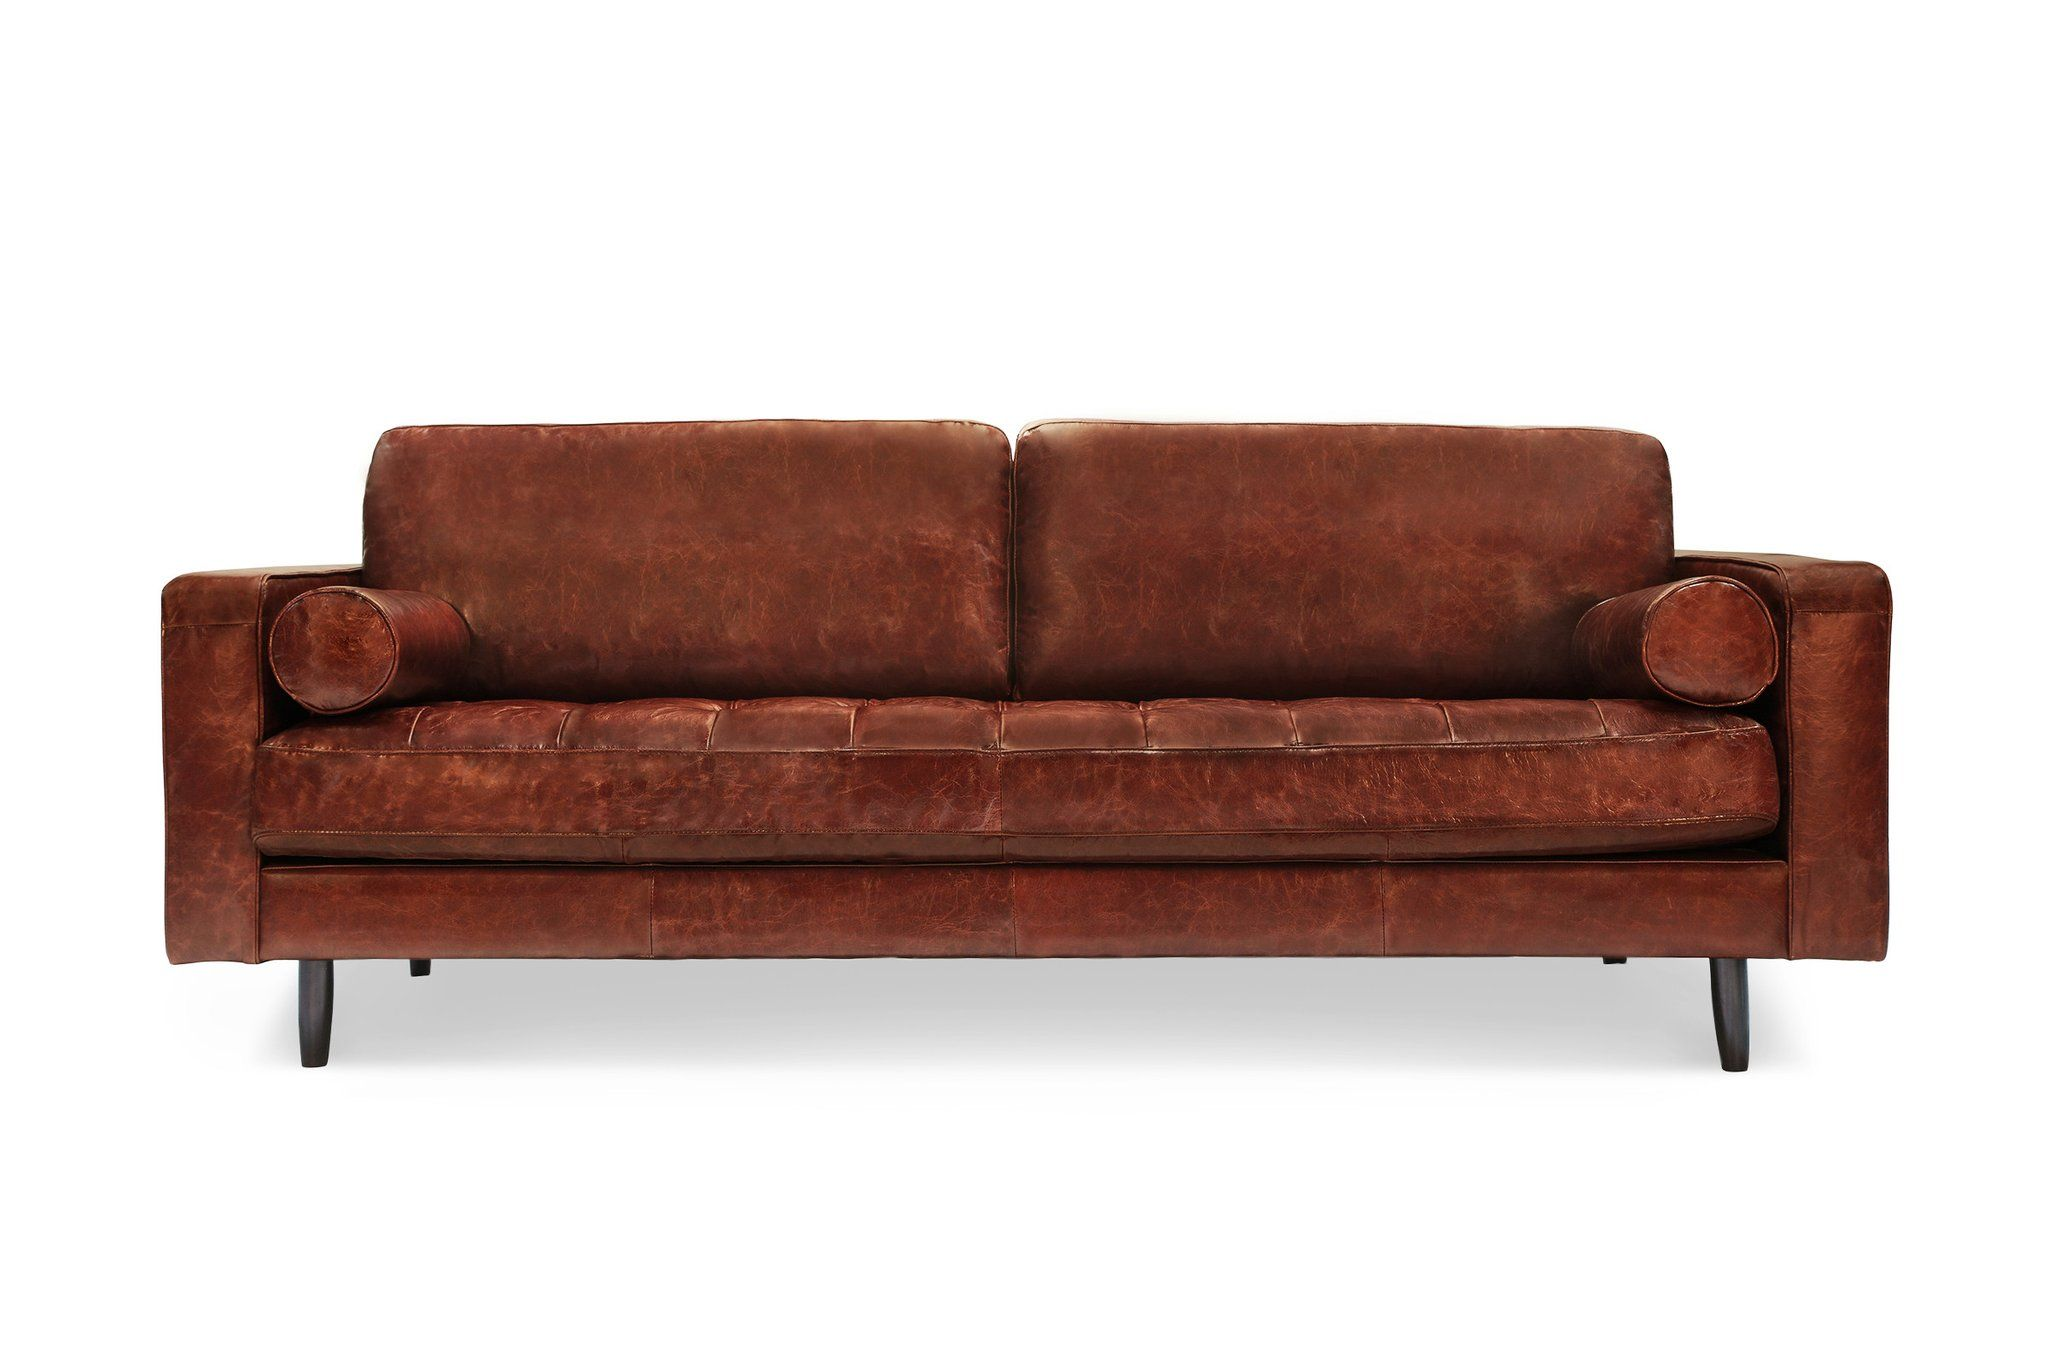 freeman sofa in 2019 furniture distressed leather couch sofa rh pinterest co uk